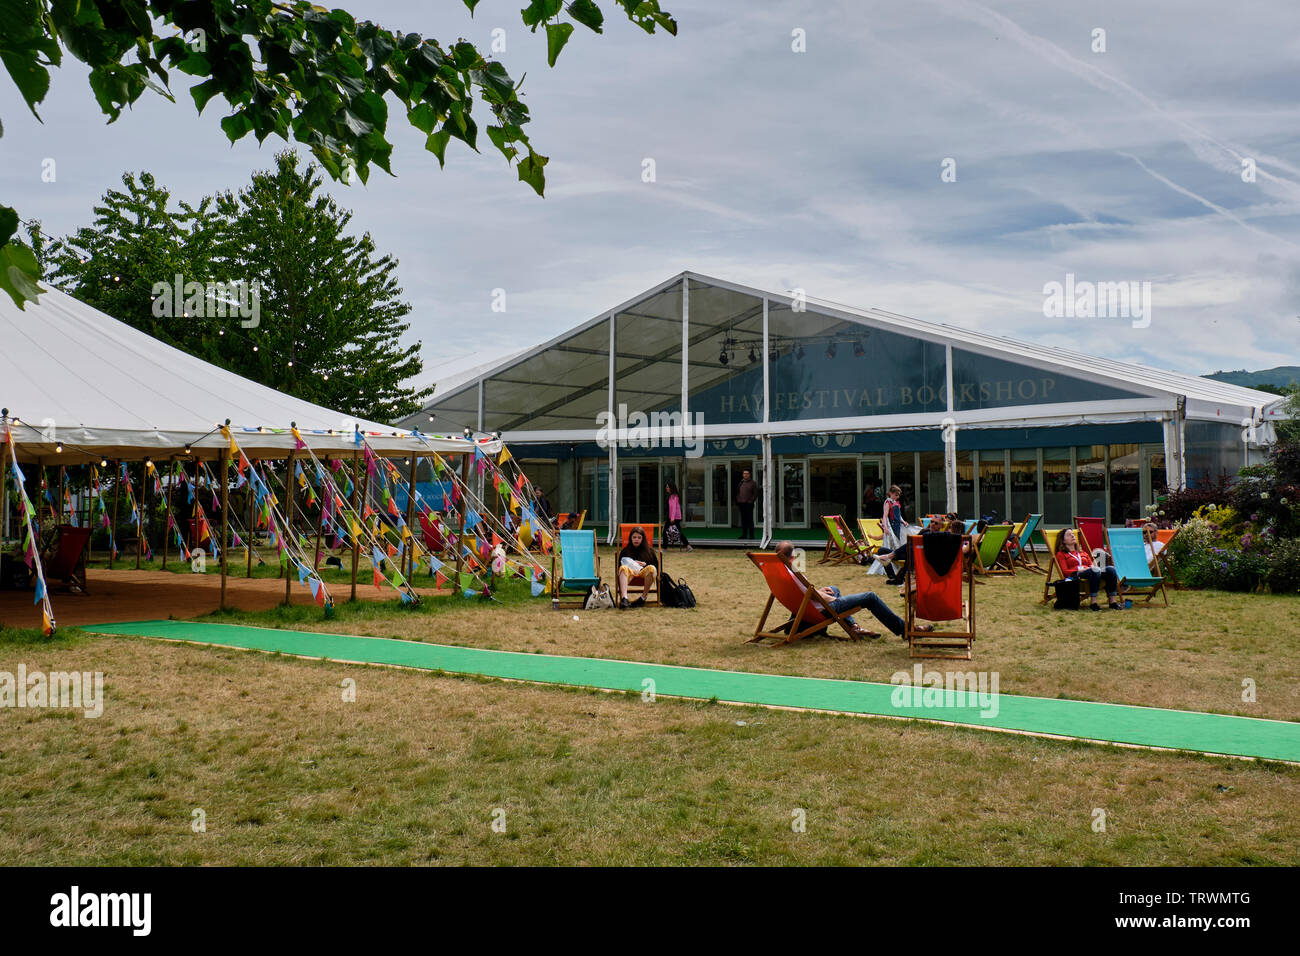 The Hay Festival Bookshop at the Hay Literary Festival, Hay on Wye, Powys - Stock Image